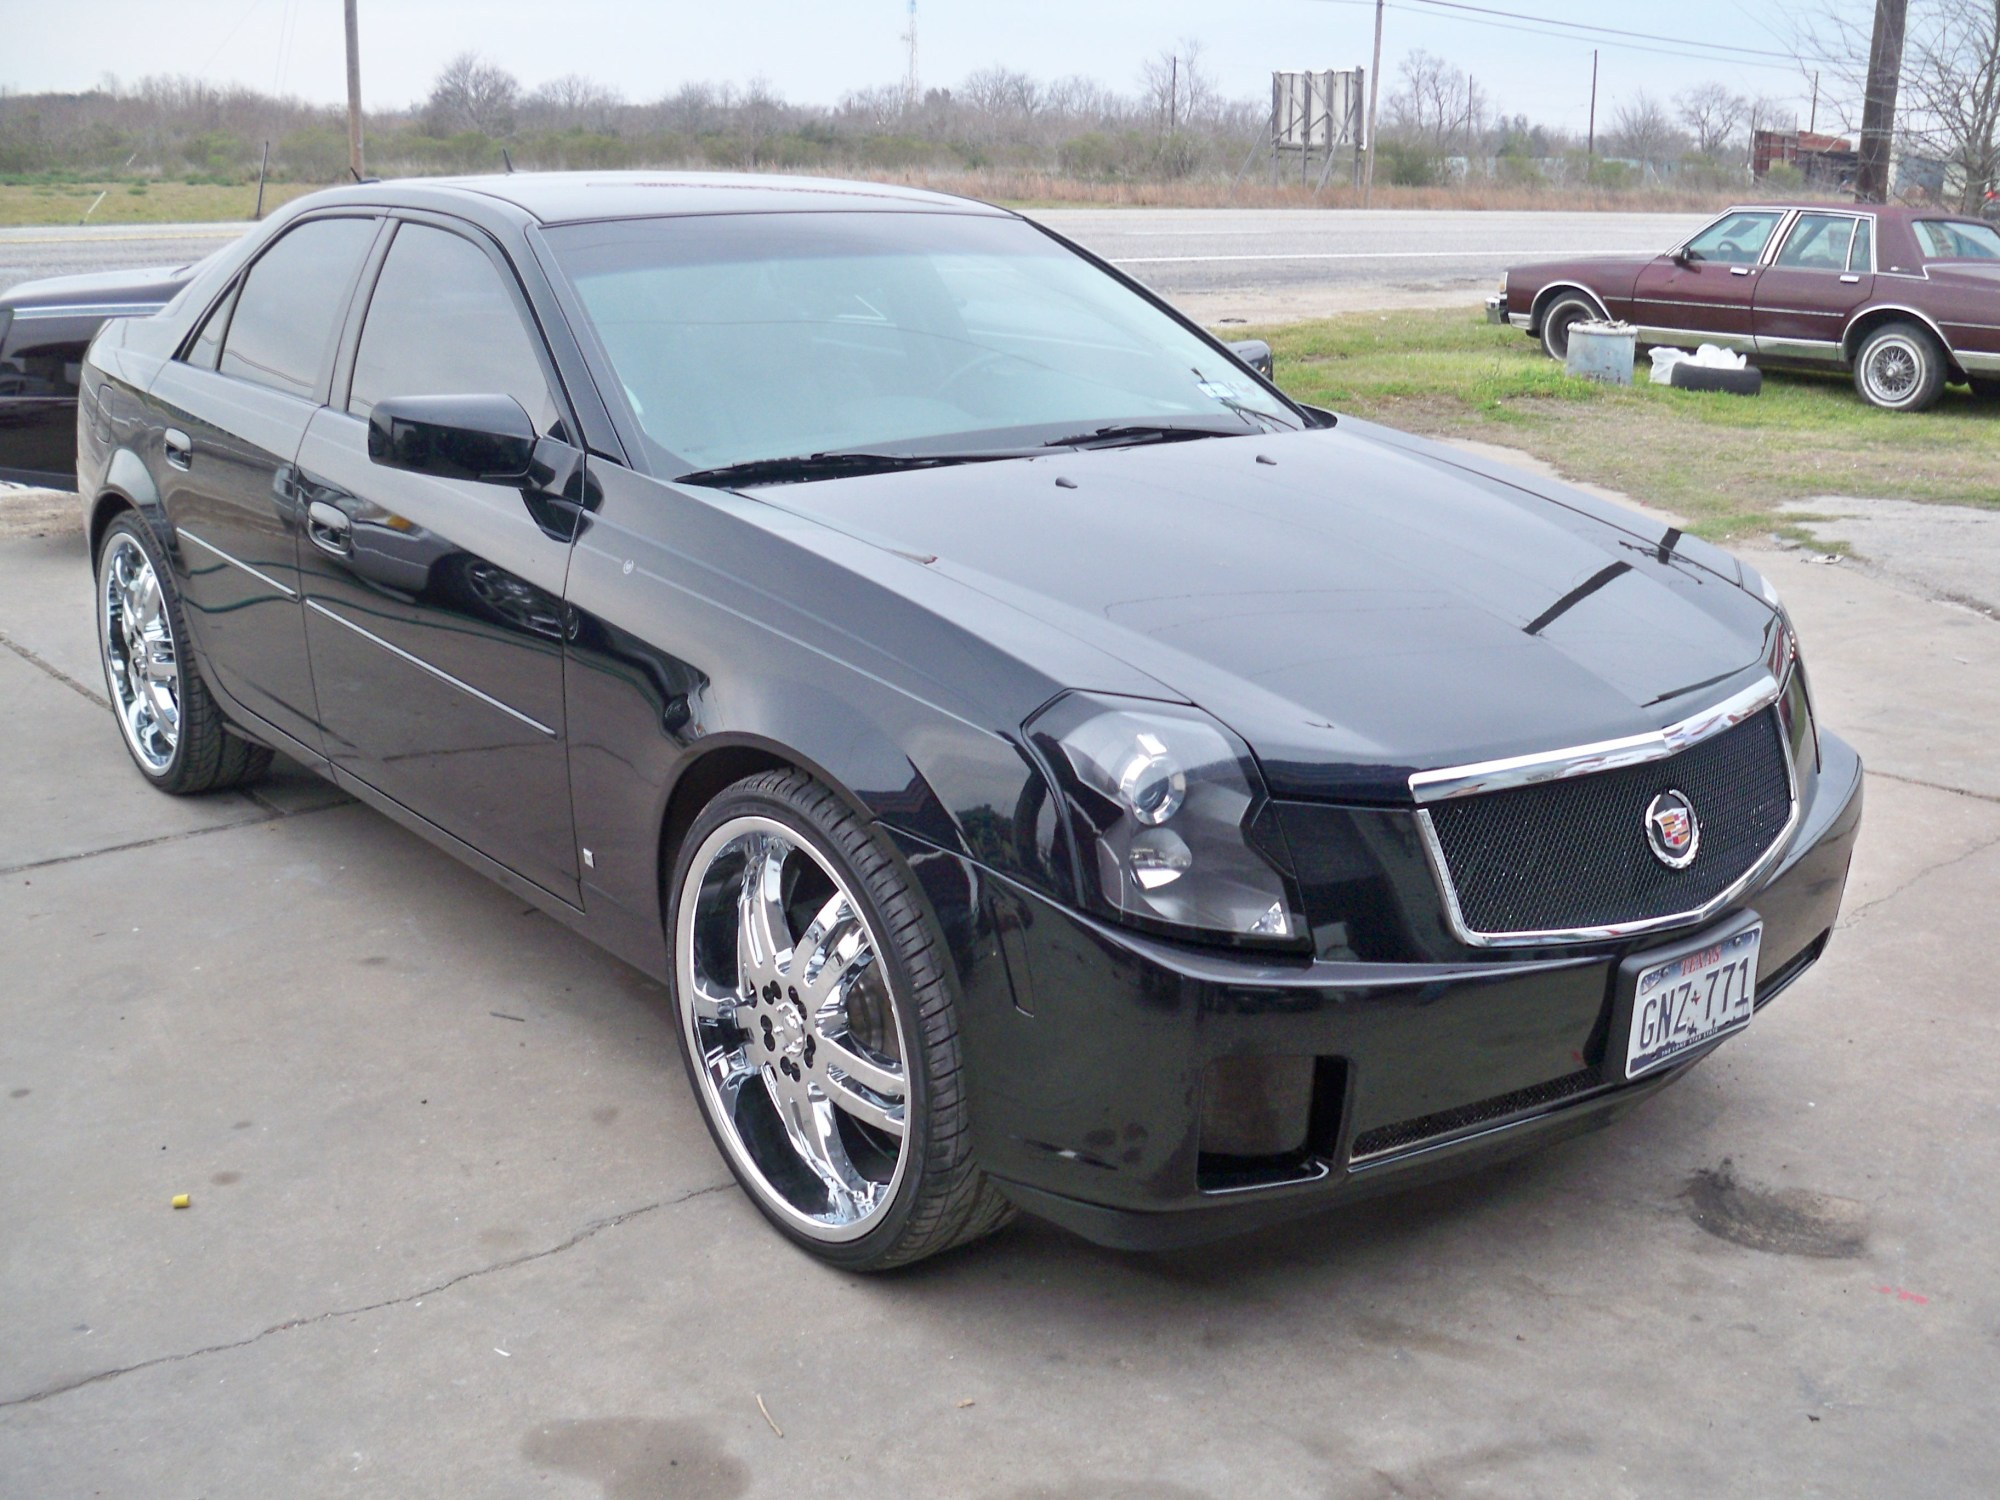 hight resolution of justlaccn 2006 cadillac cts 32459430014 original justlaccn 2006 cadillac cts 32459430010 original